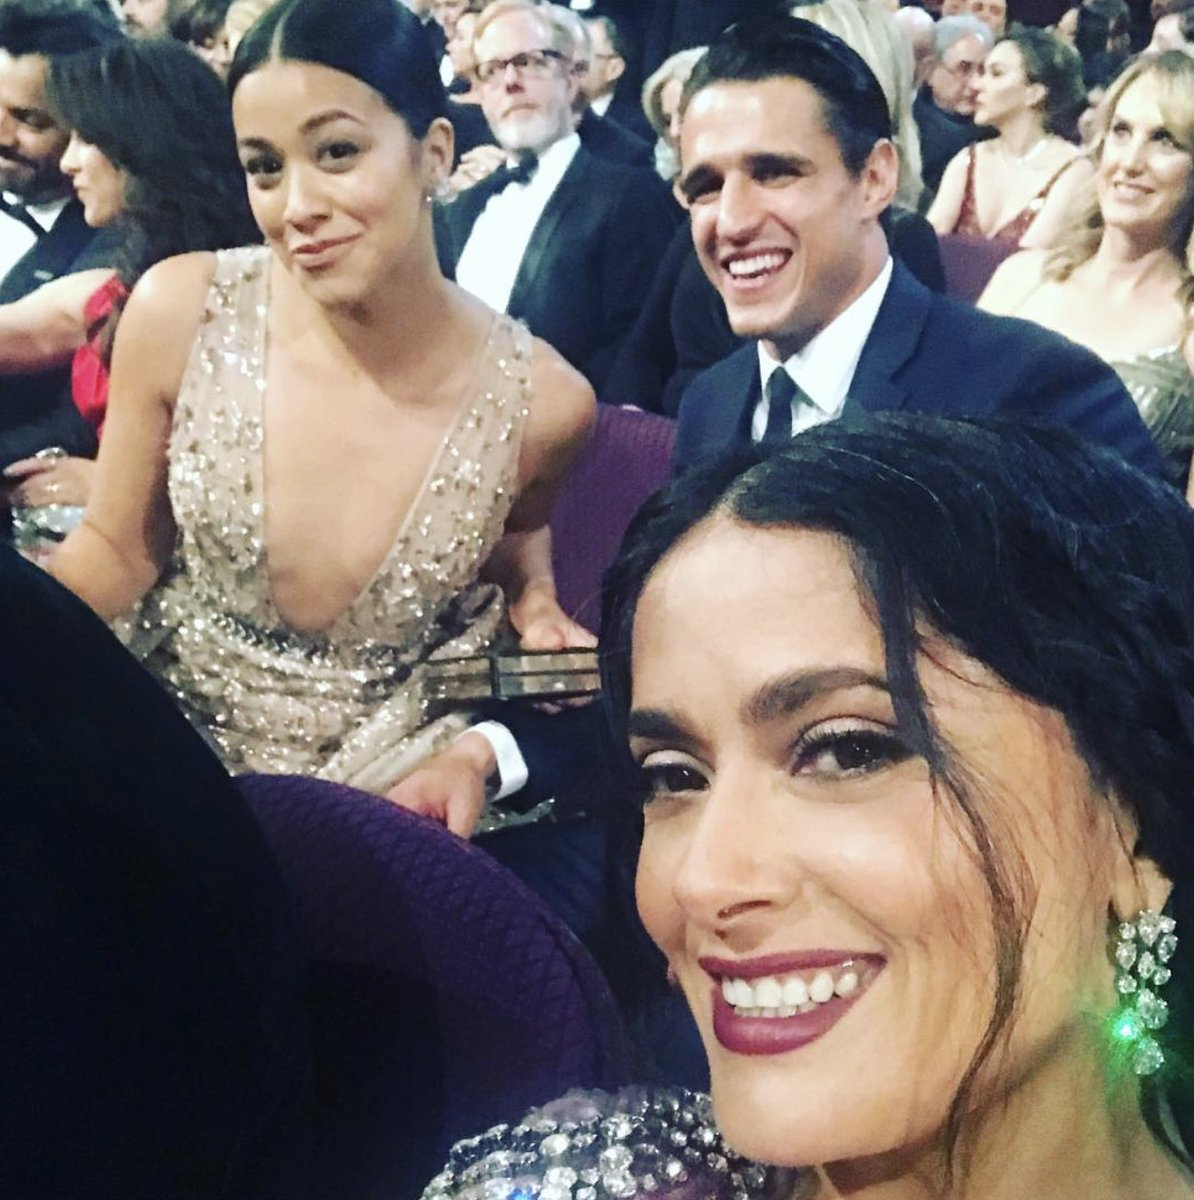 If you ask Salma Hayek, she had the best seat at the Oscars: